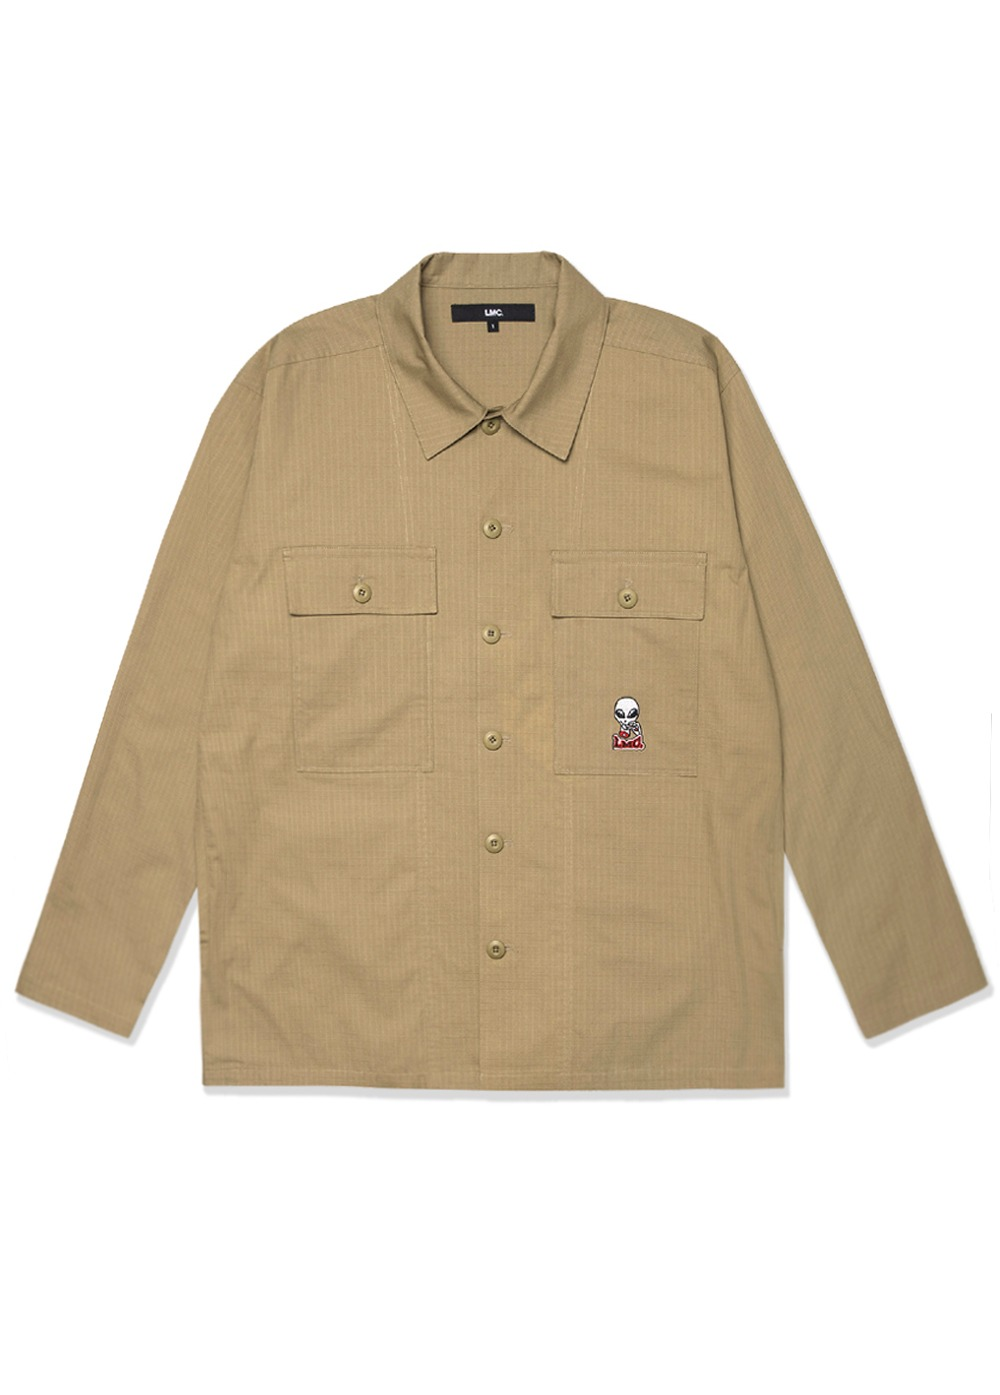 LMC RIPSTOP FATIGUE SHIRT brown